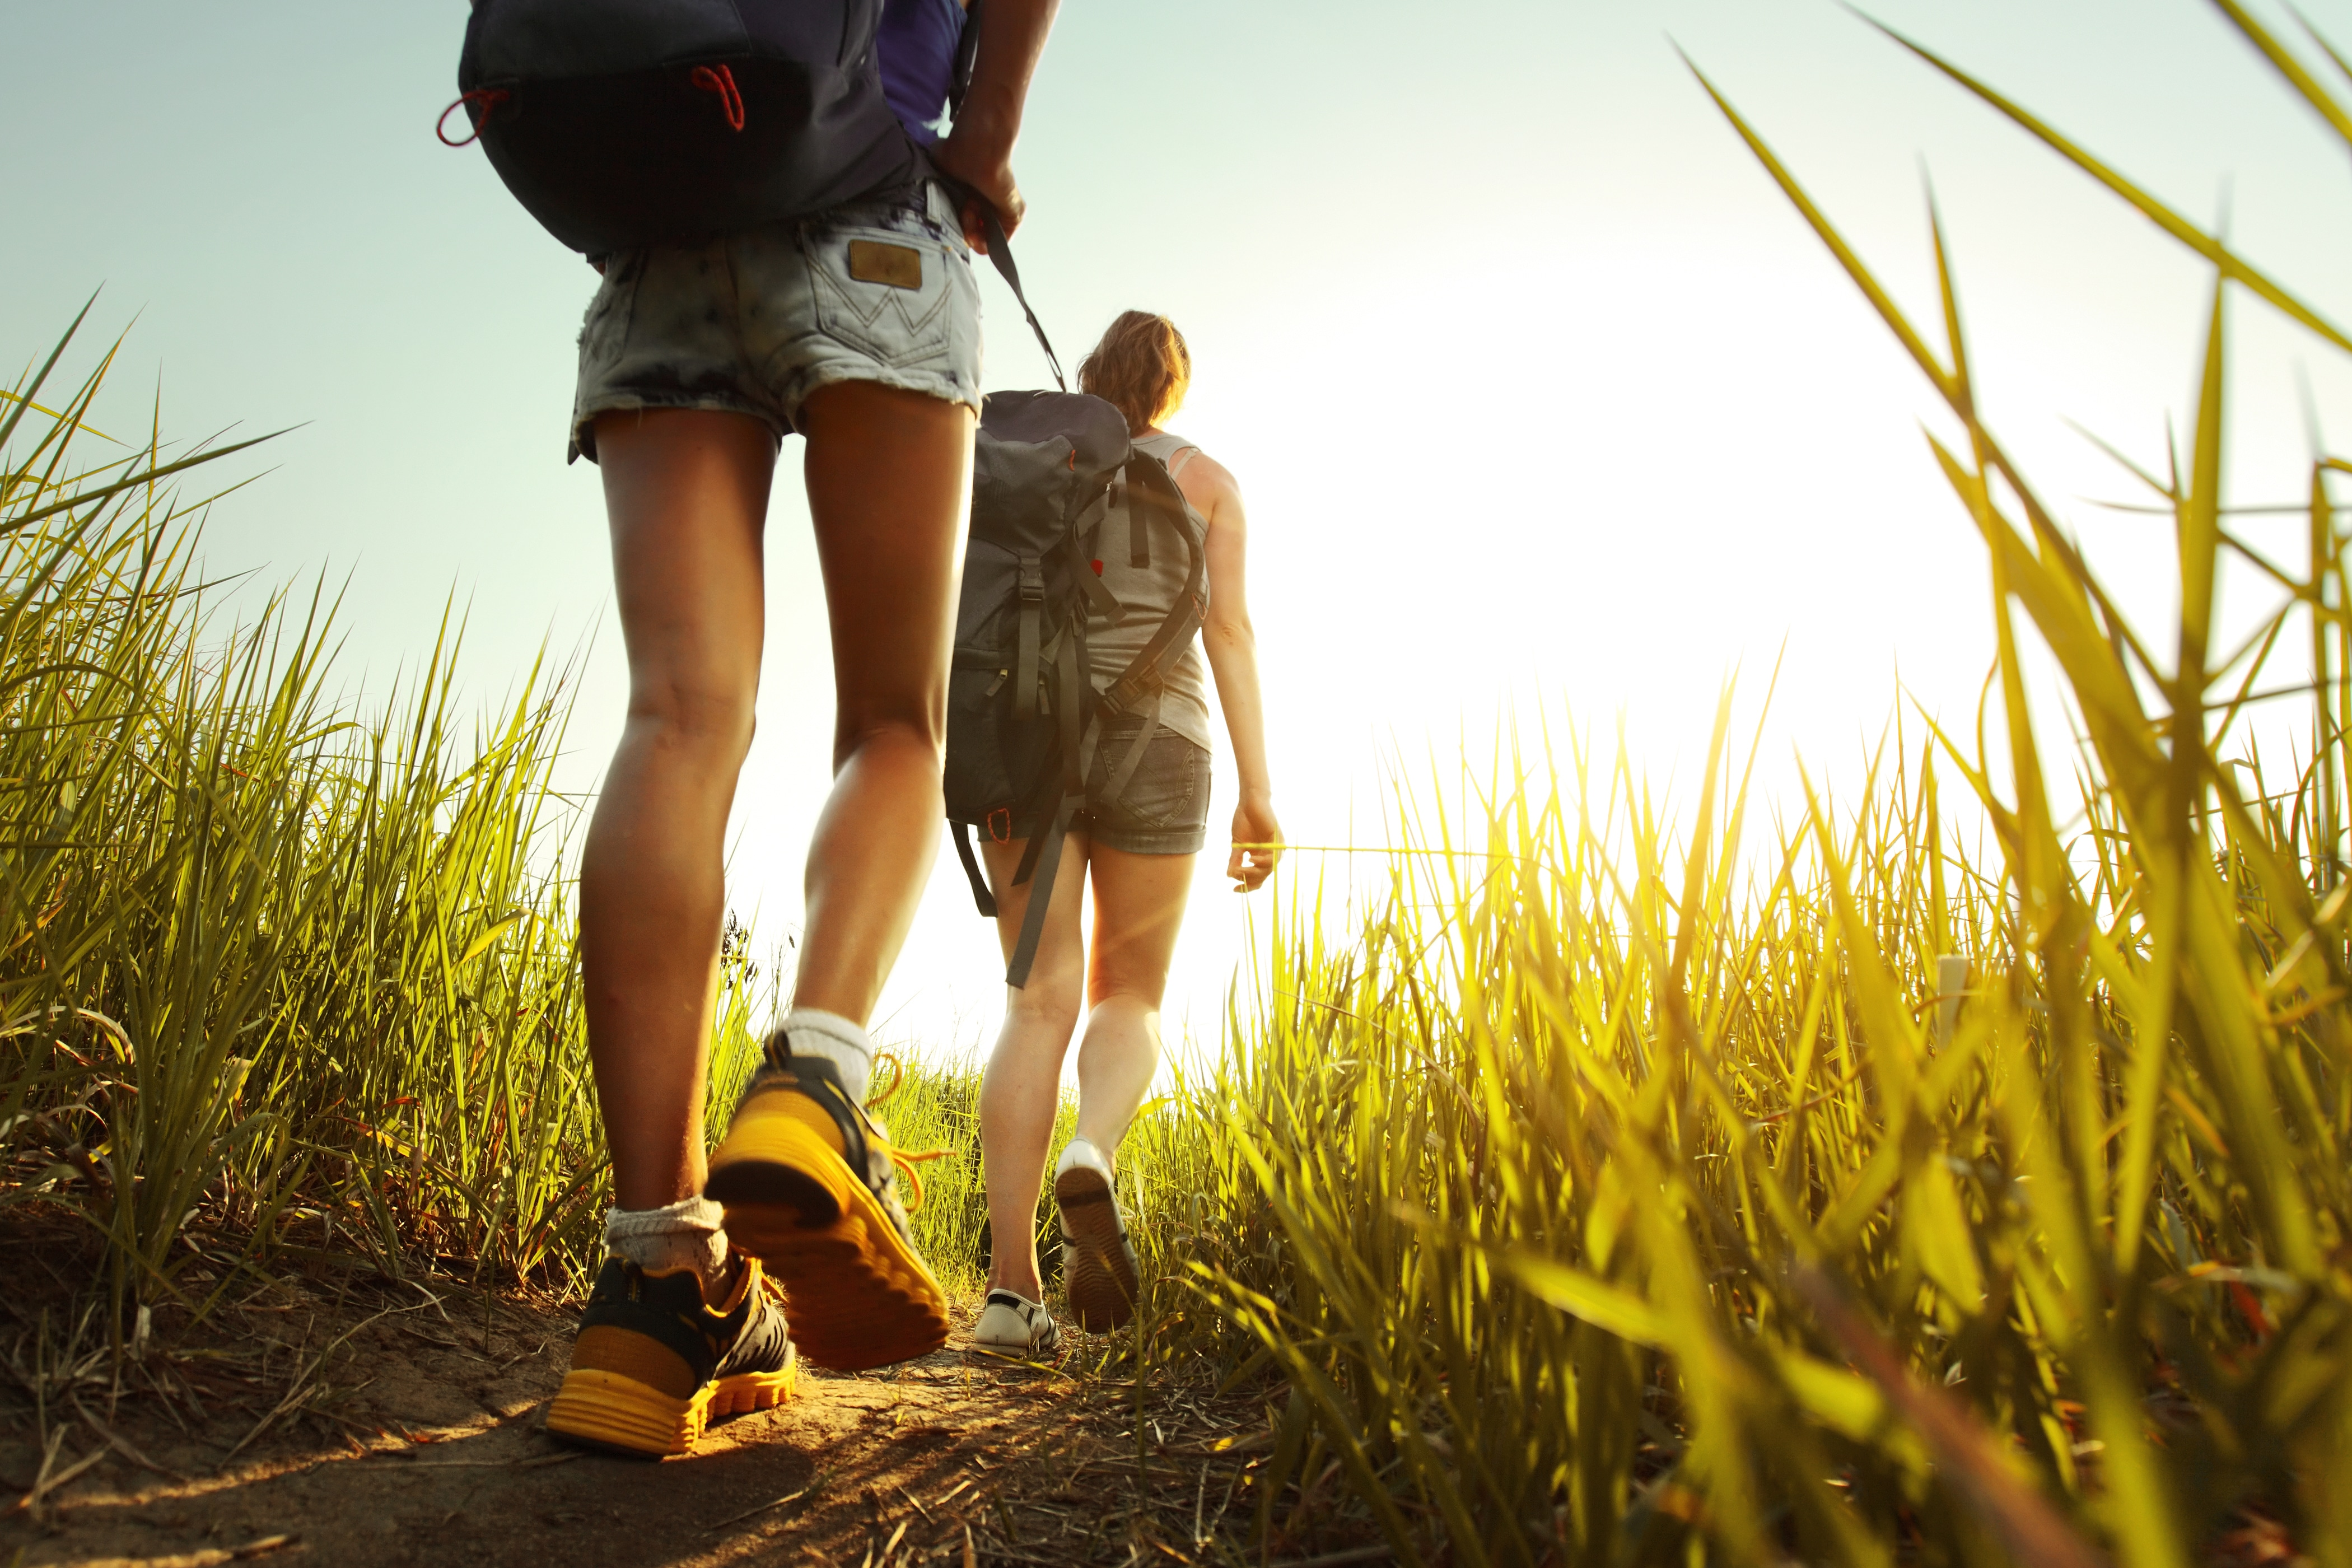 alignthoughts-Hikers with backpacks walking through a meadow with lush grass